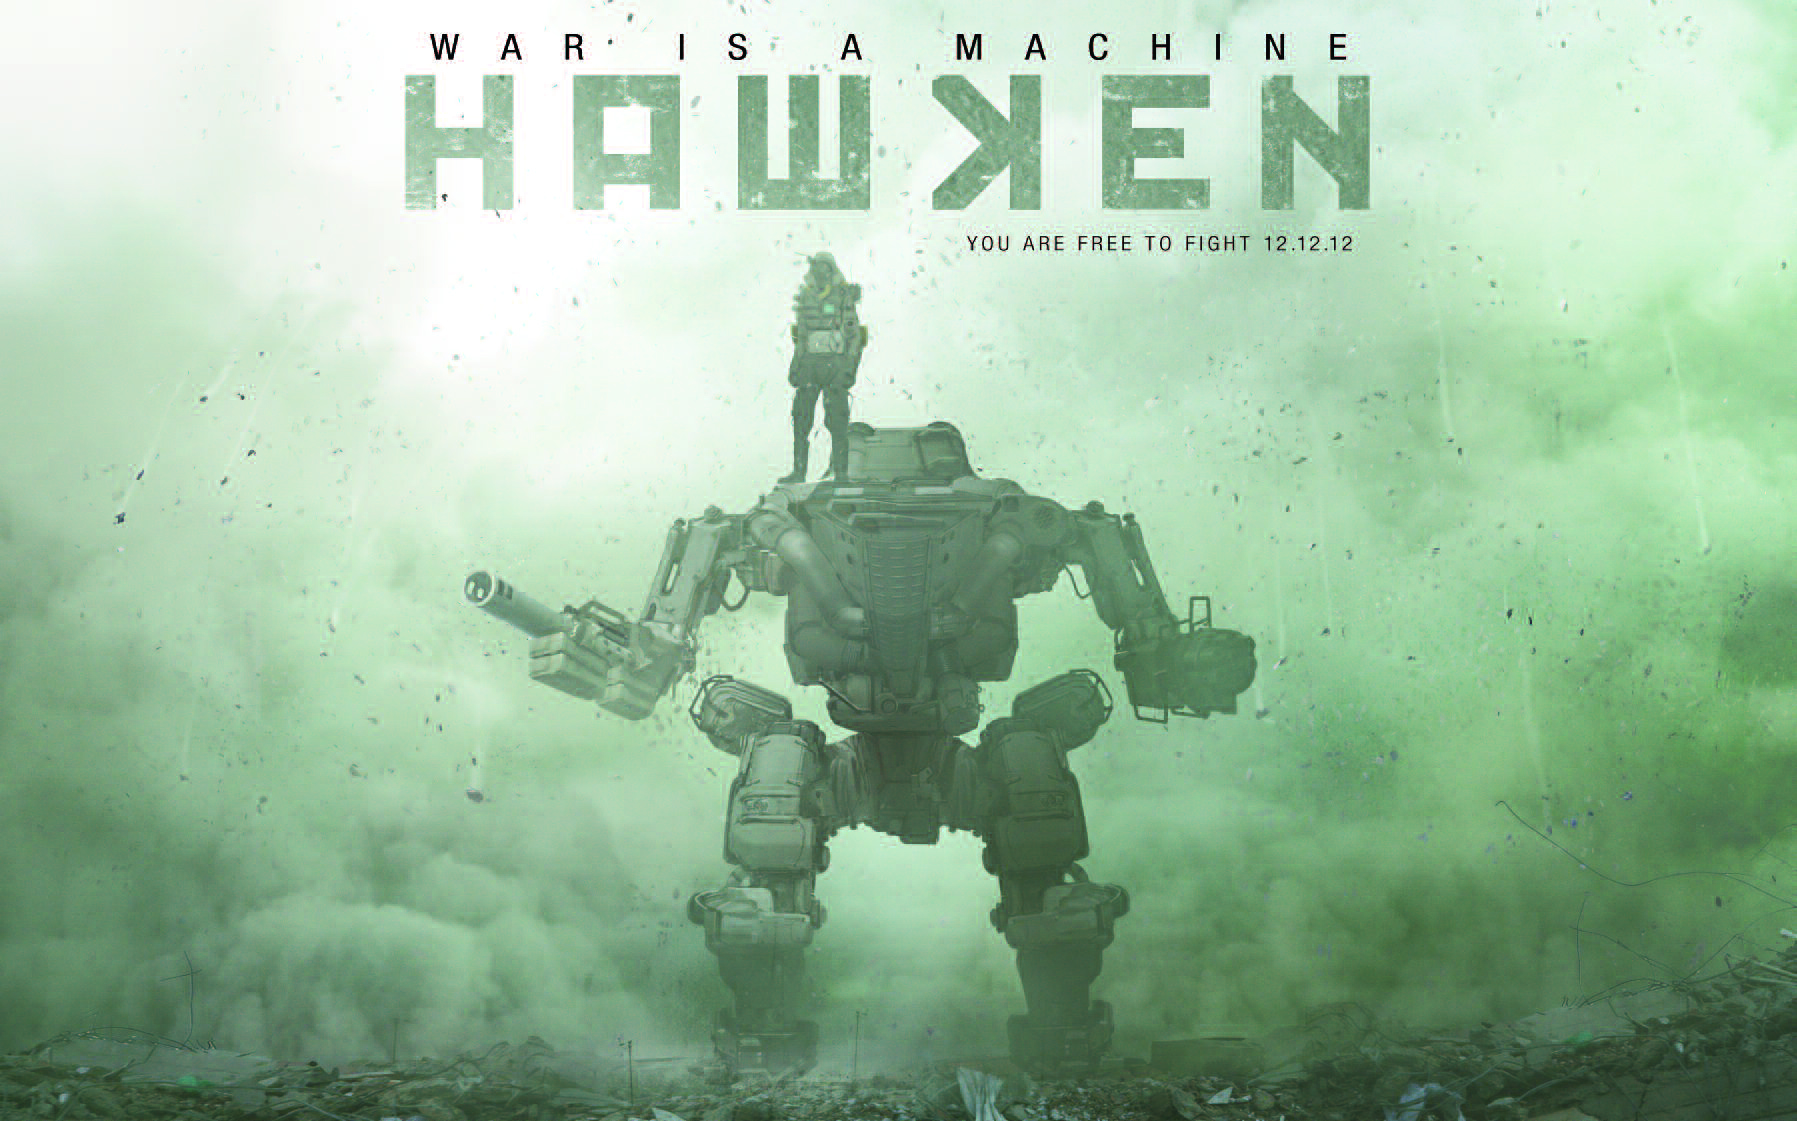 Amazing Hawken Pictures & Backgrounds